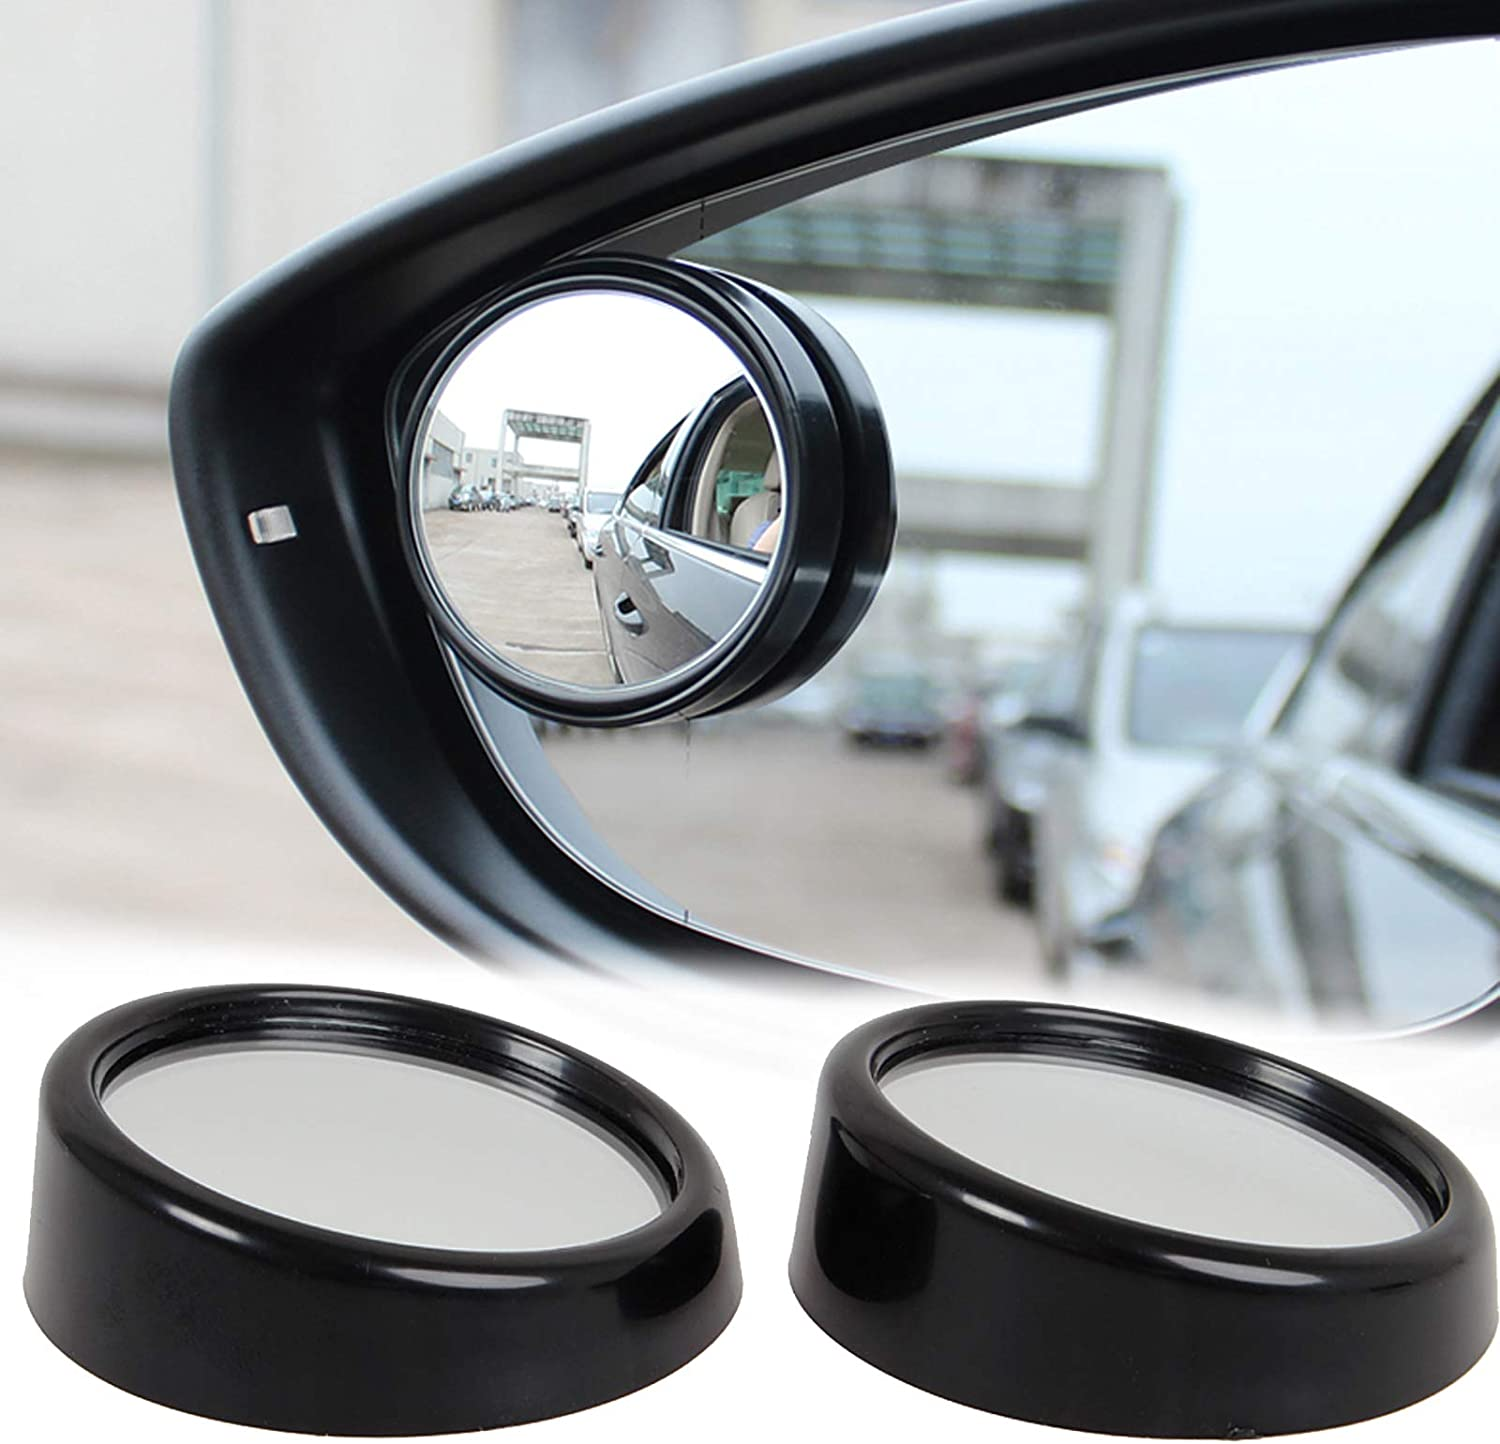 Xotic Tech Blind Spot Mirror Popular brand Online limited product in the world Rear View Adjustable 360°Rotate